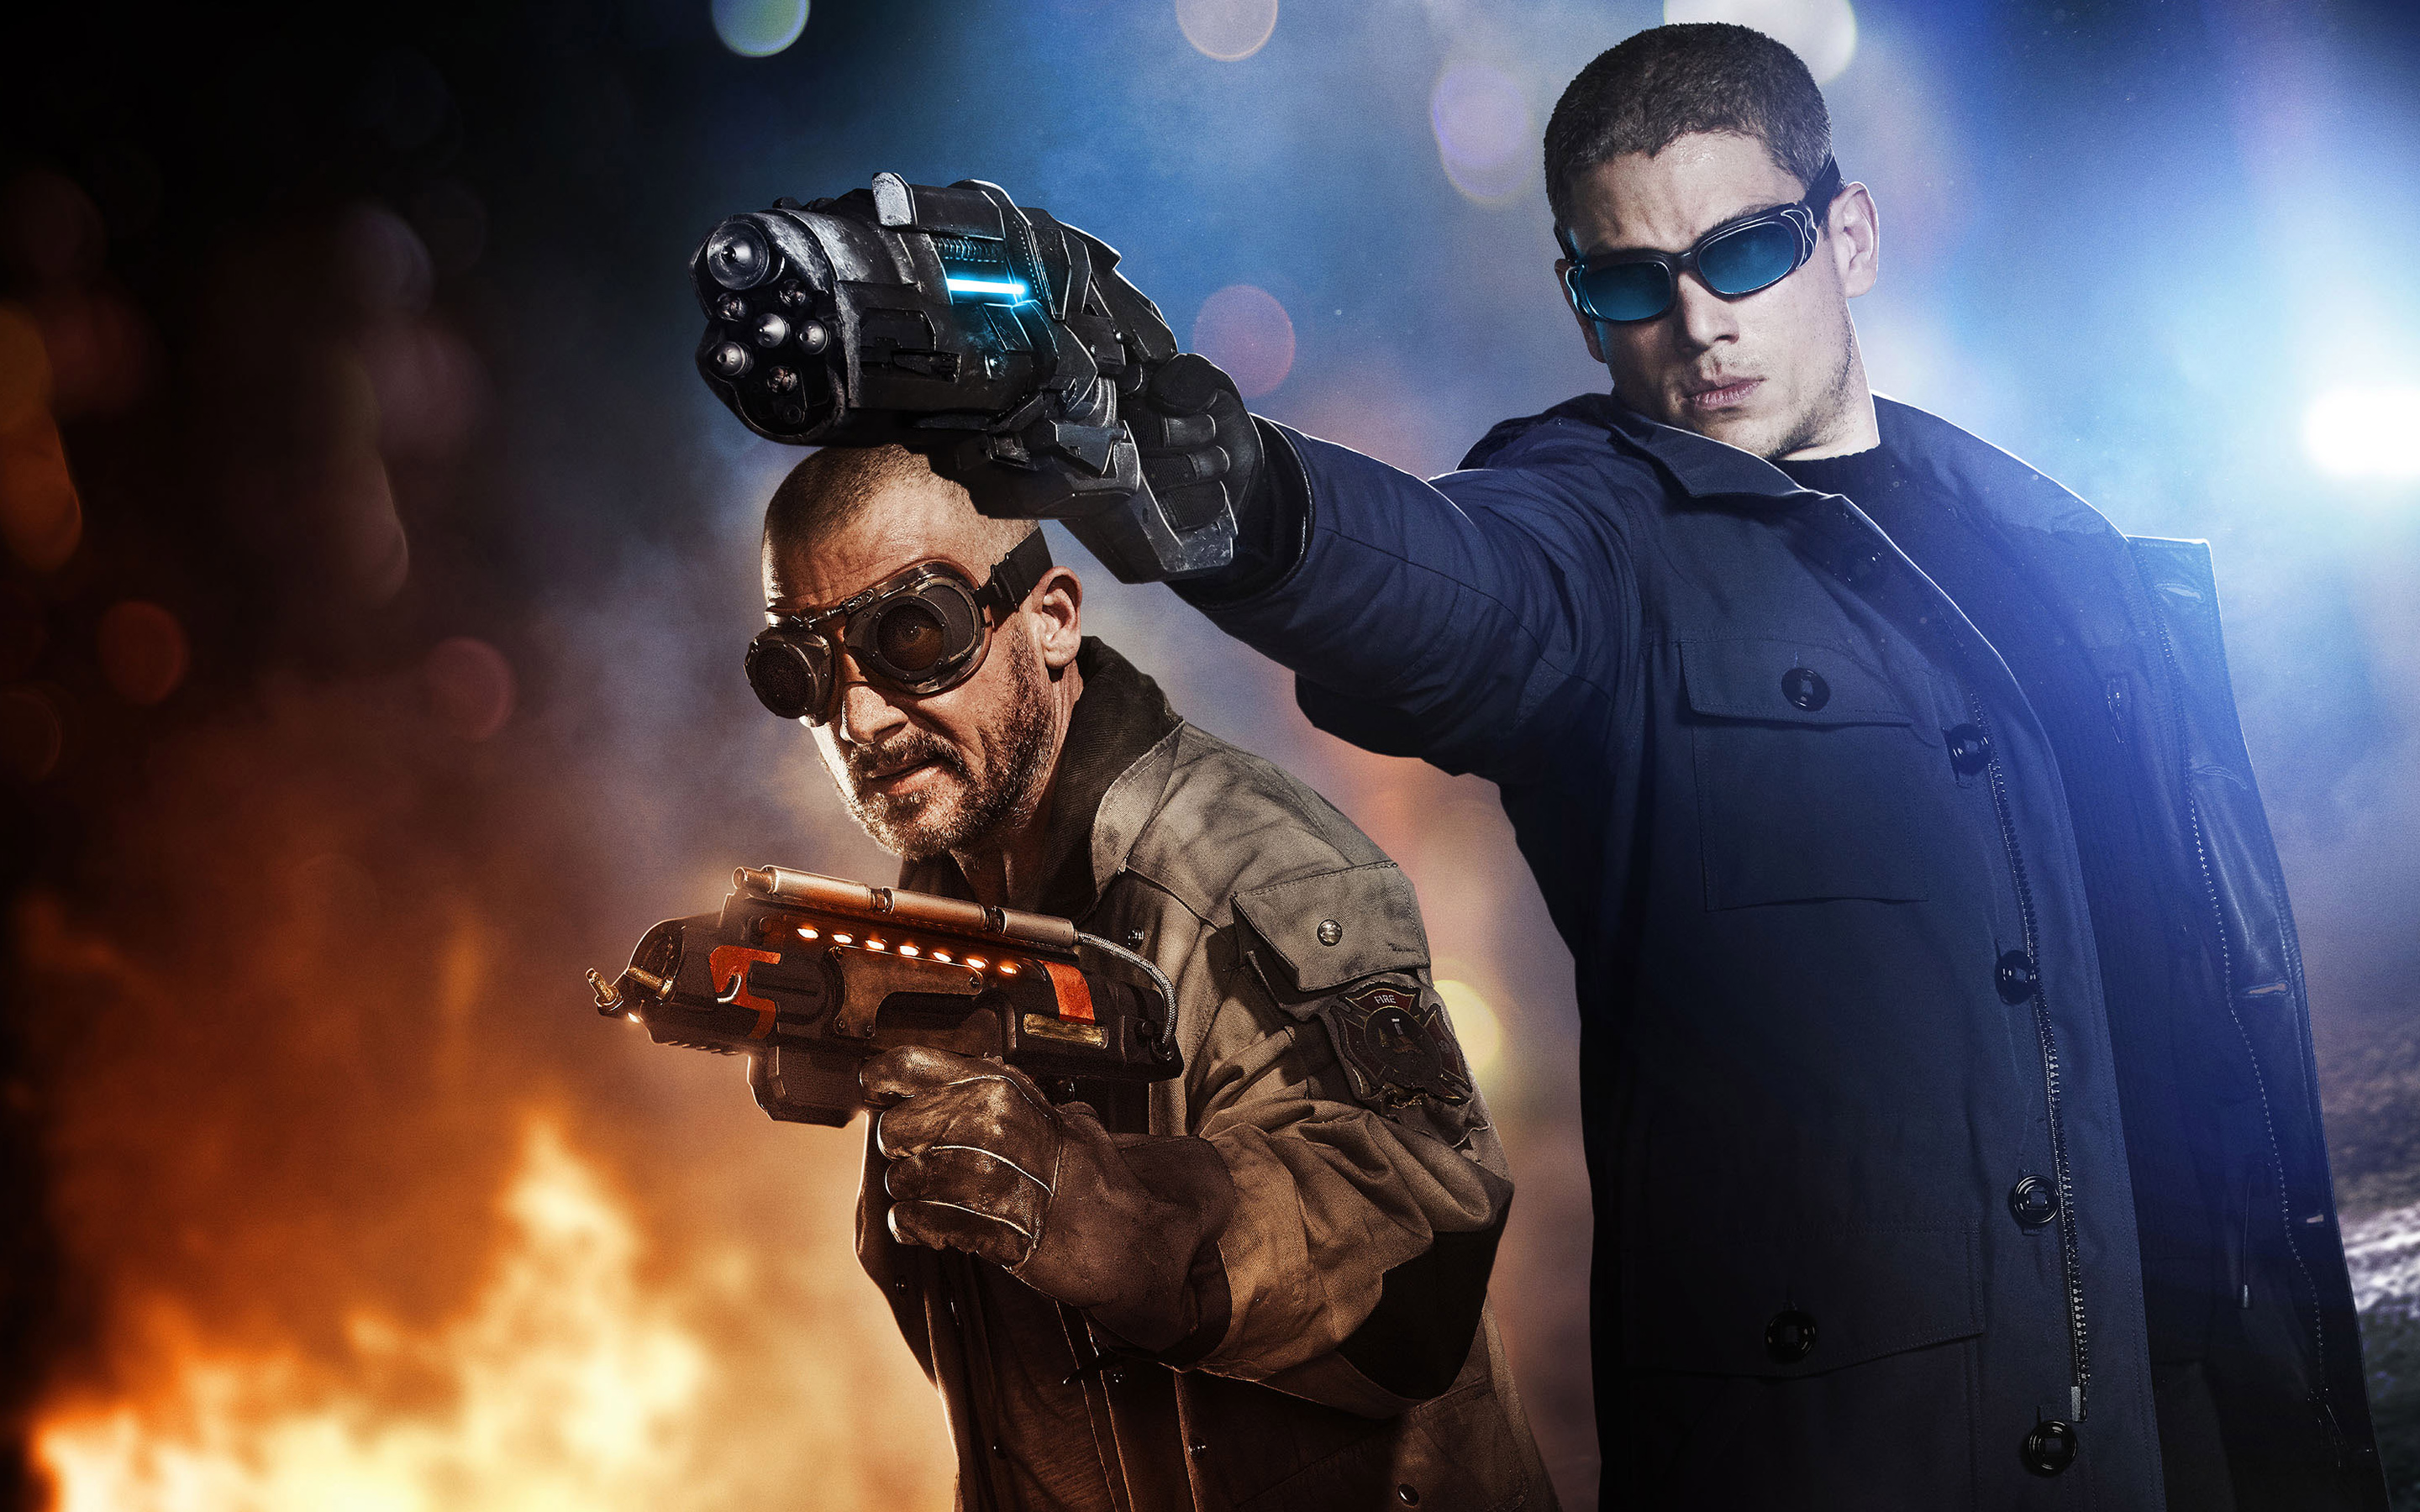 Captain Cold Legends Of Tomorrow 2016, HD Tv Shows, 4k